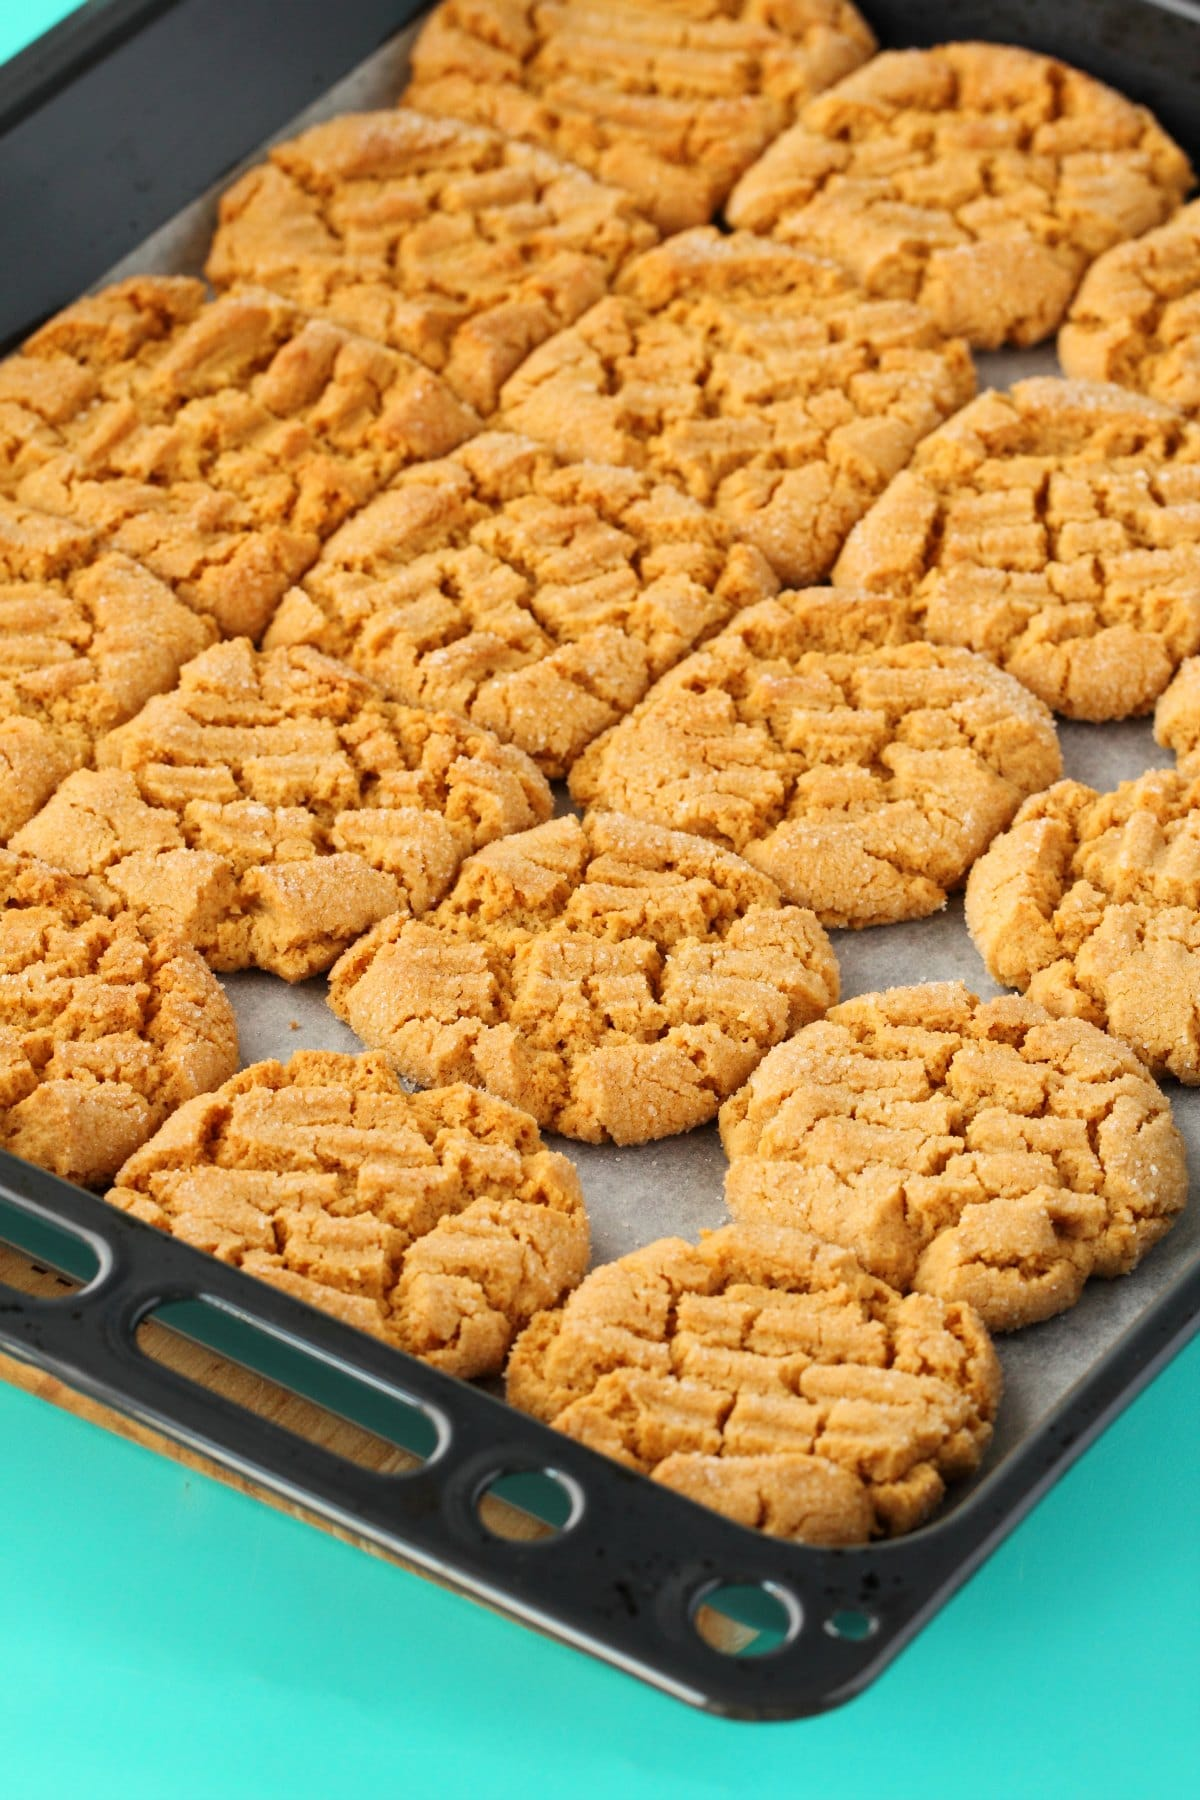 Vegan Peanut Butter Cookies on a baking tray freshly baked straight out of the oven.